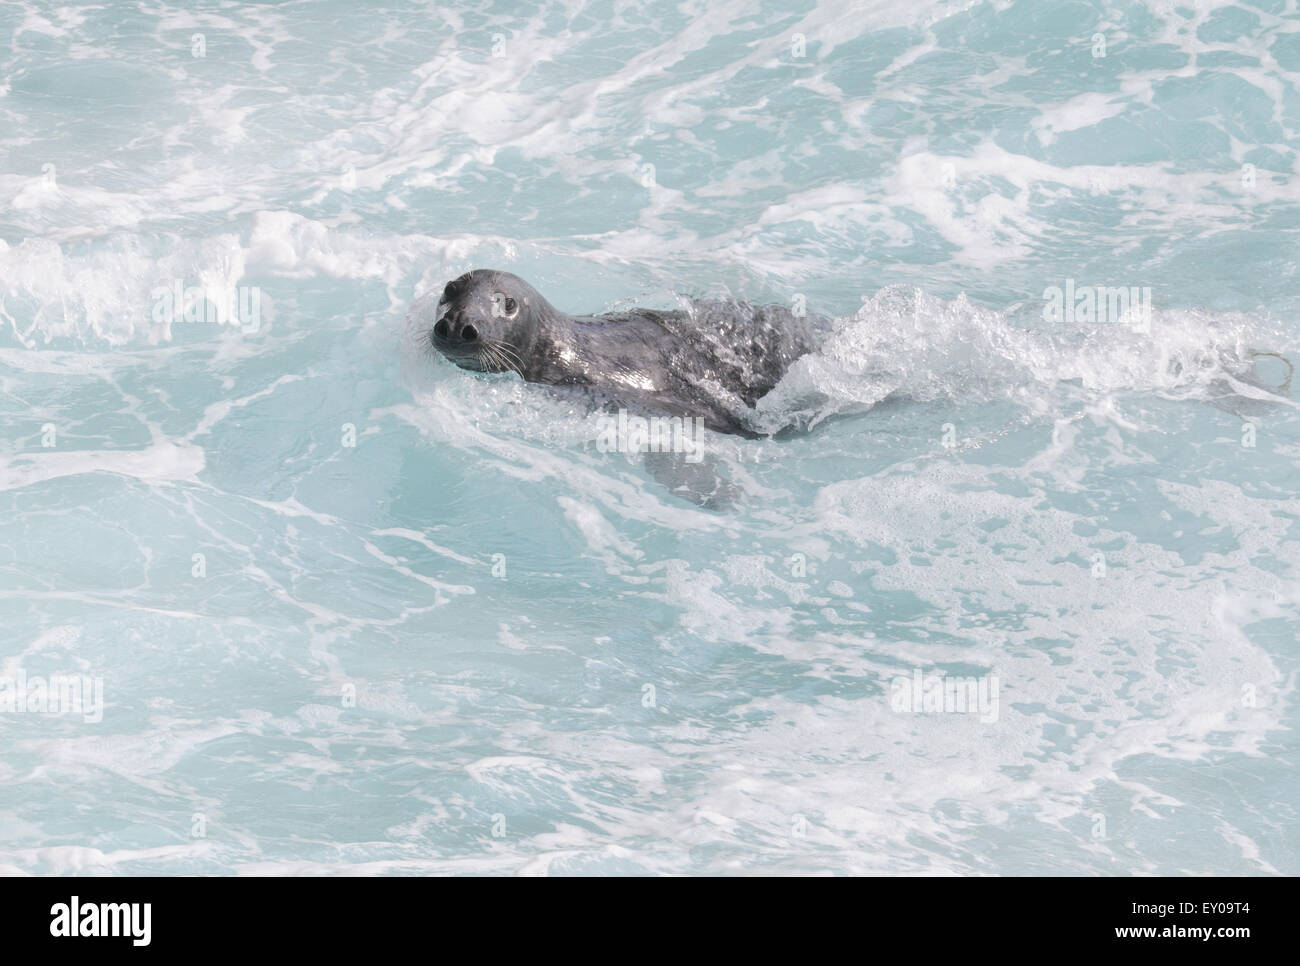 A curious grey seal (Halichoerus grypus) swims in the surf to investigate passers-by. Hirta, St Kilda, Scotland, - Stock Image